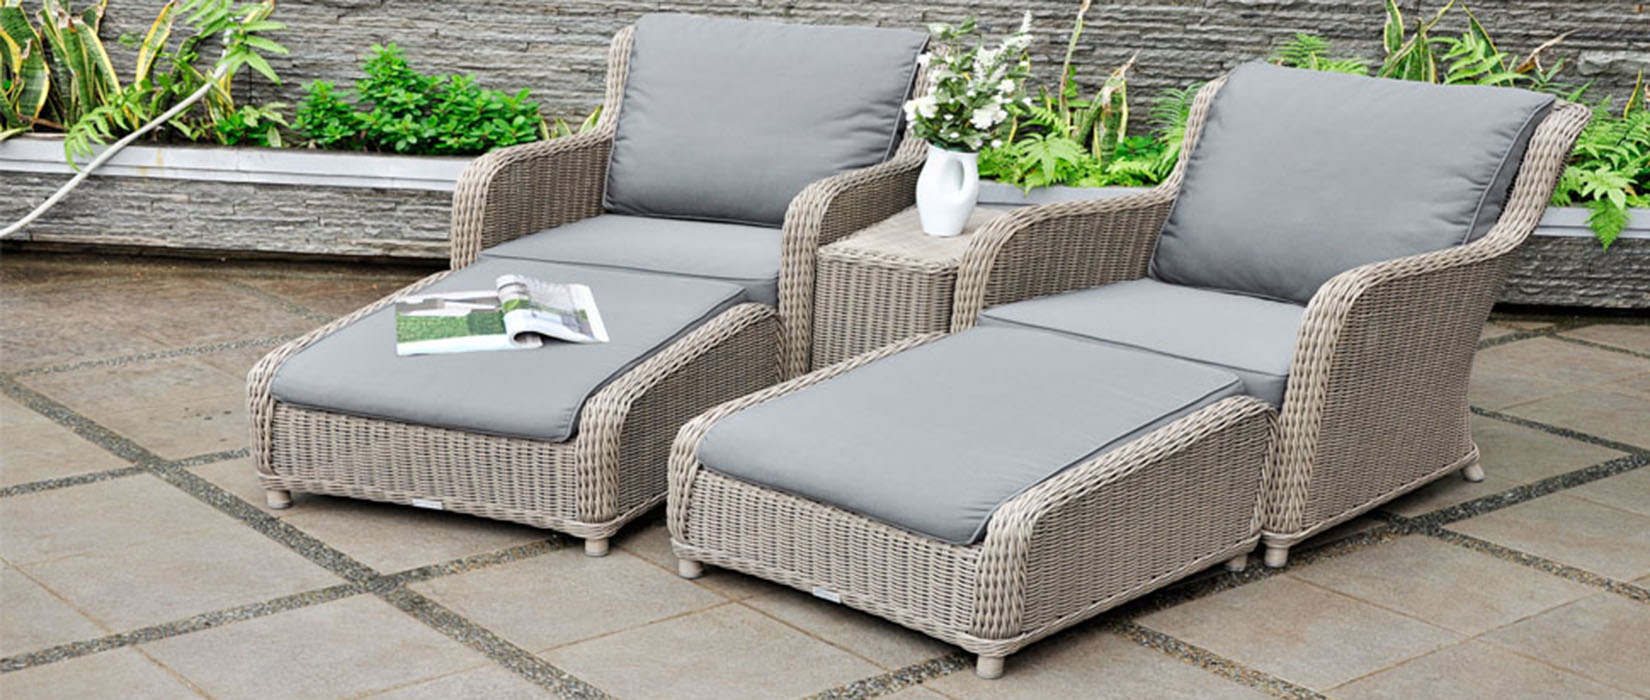 Outdoor Living Chairs